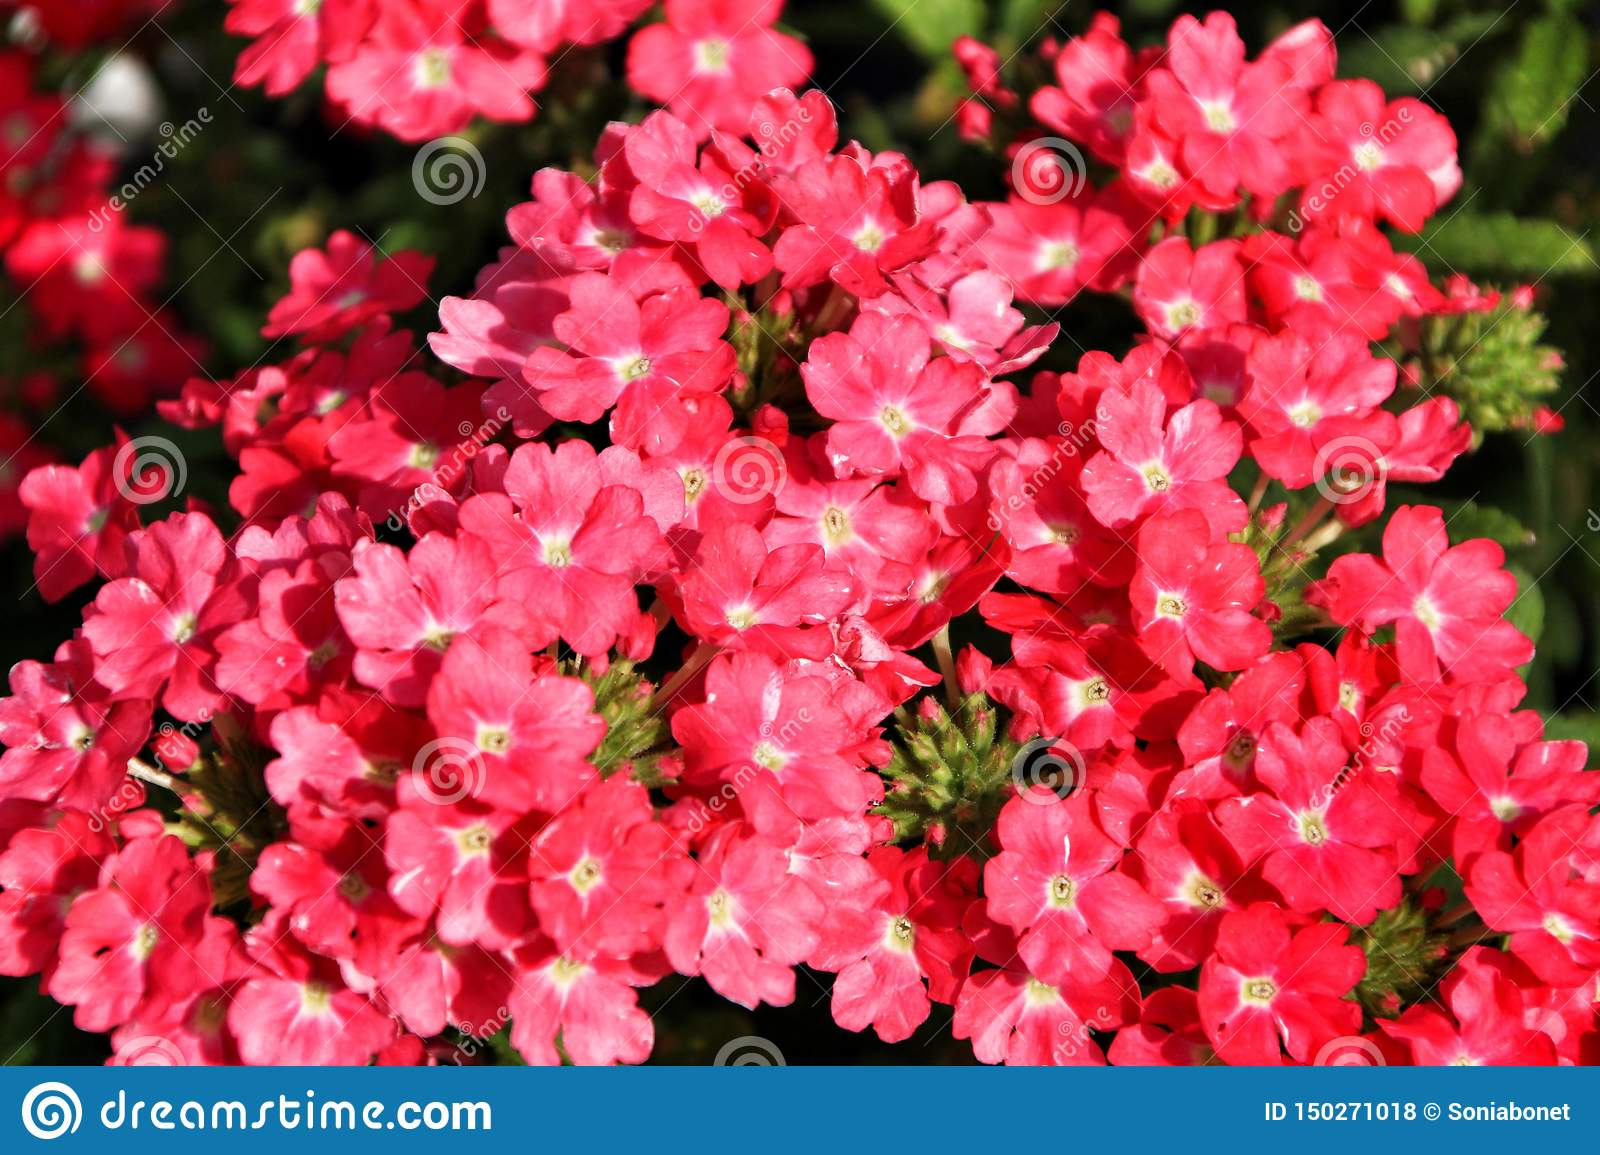 Verbena Flowers In The Garden Stock Photo , Image of flower